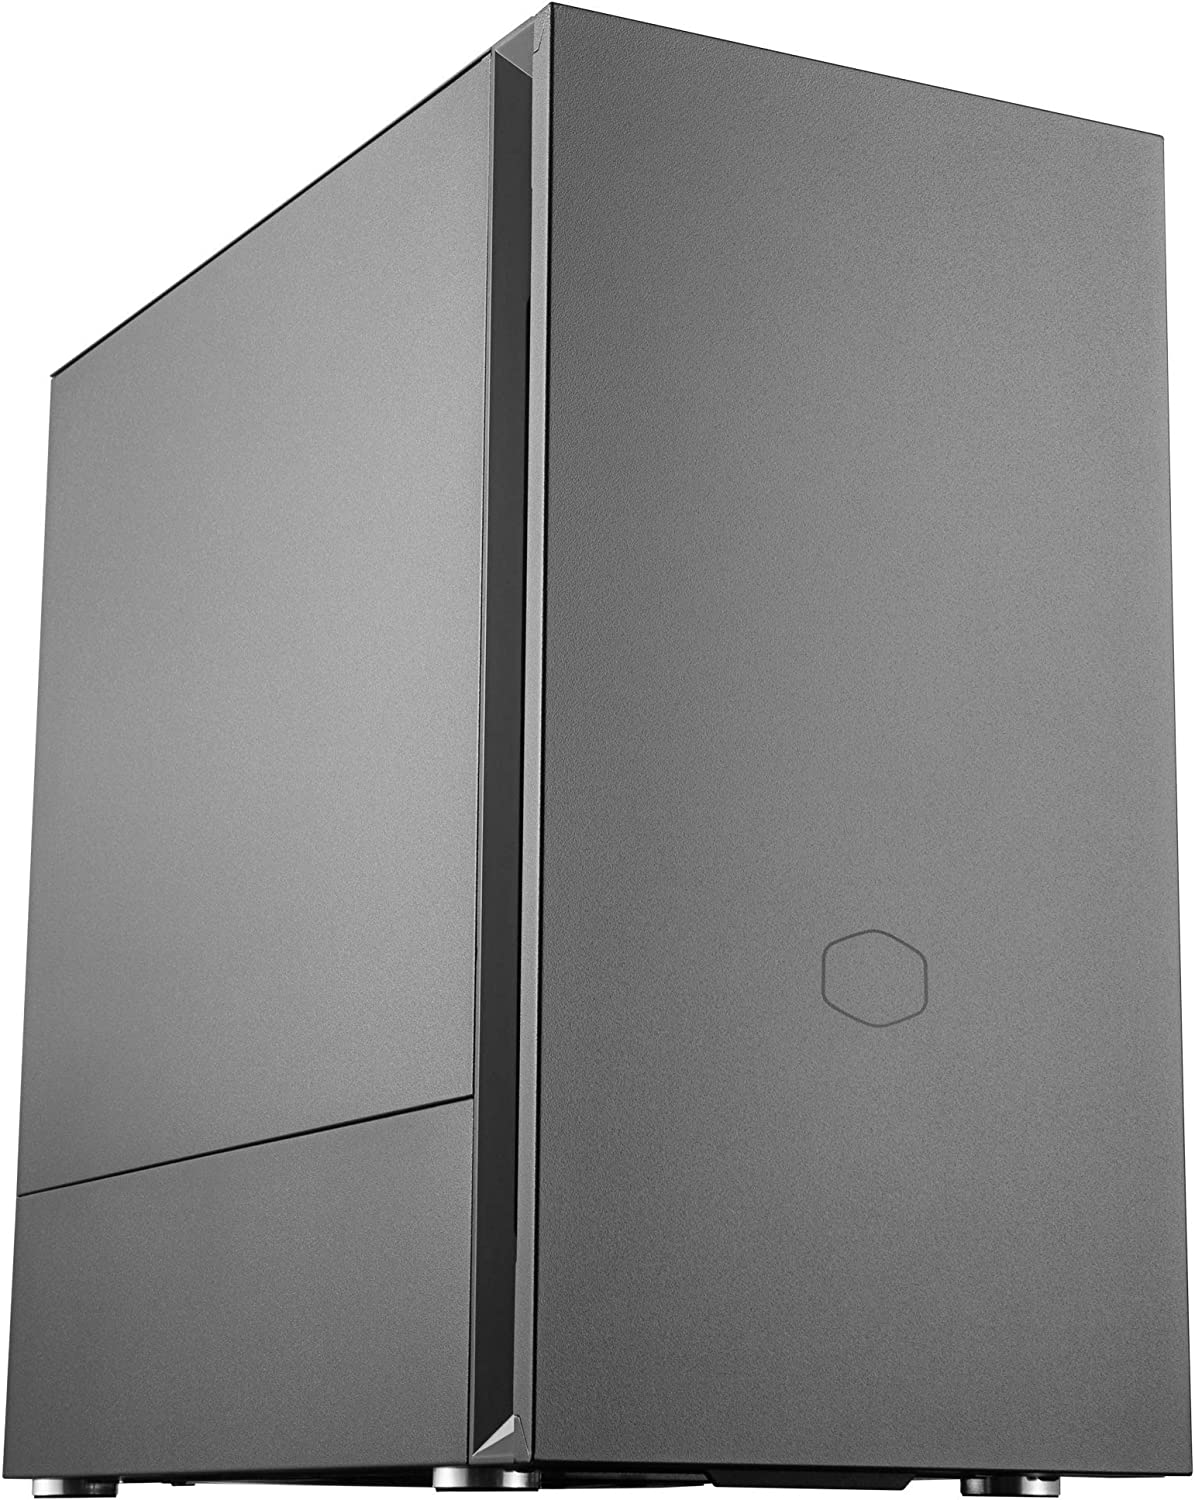 Cooler Master Silencio S400 mATX Tower W/Sound-Dampening Material, Sound-Dampened Steel Side Panel, Reversible Front Panel, SD Card Reader, and 2X 120mm PWM Silencio FP Fans